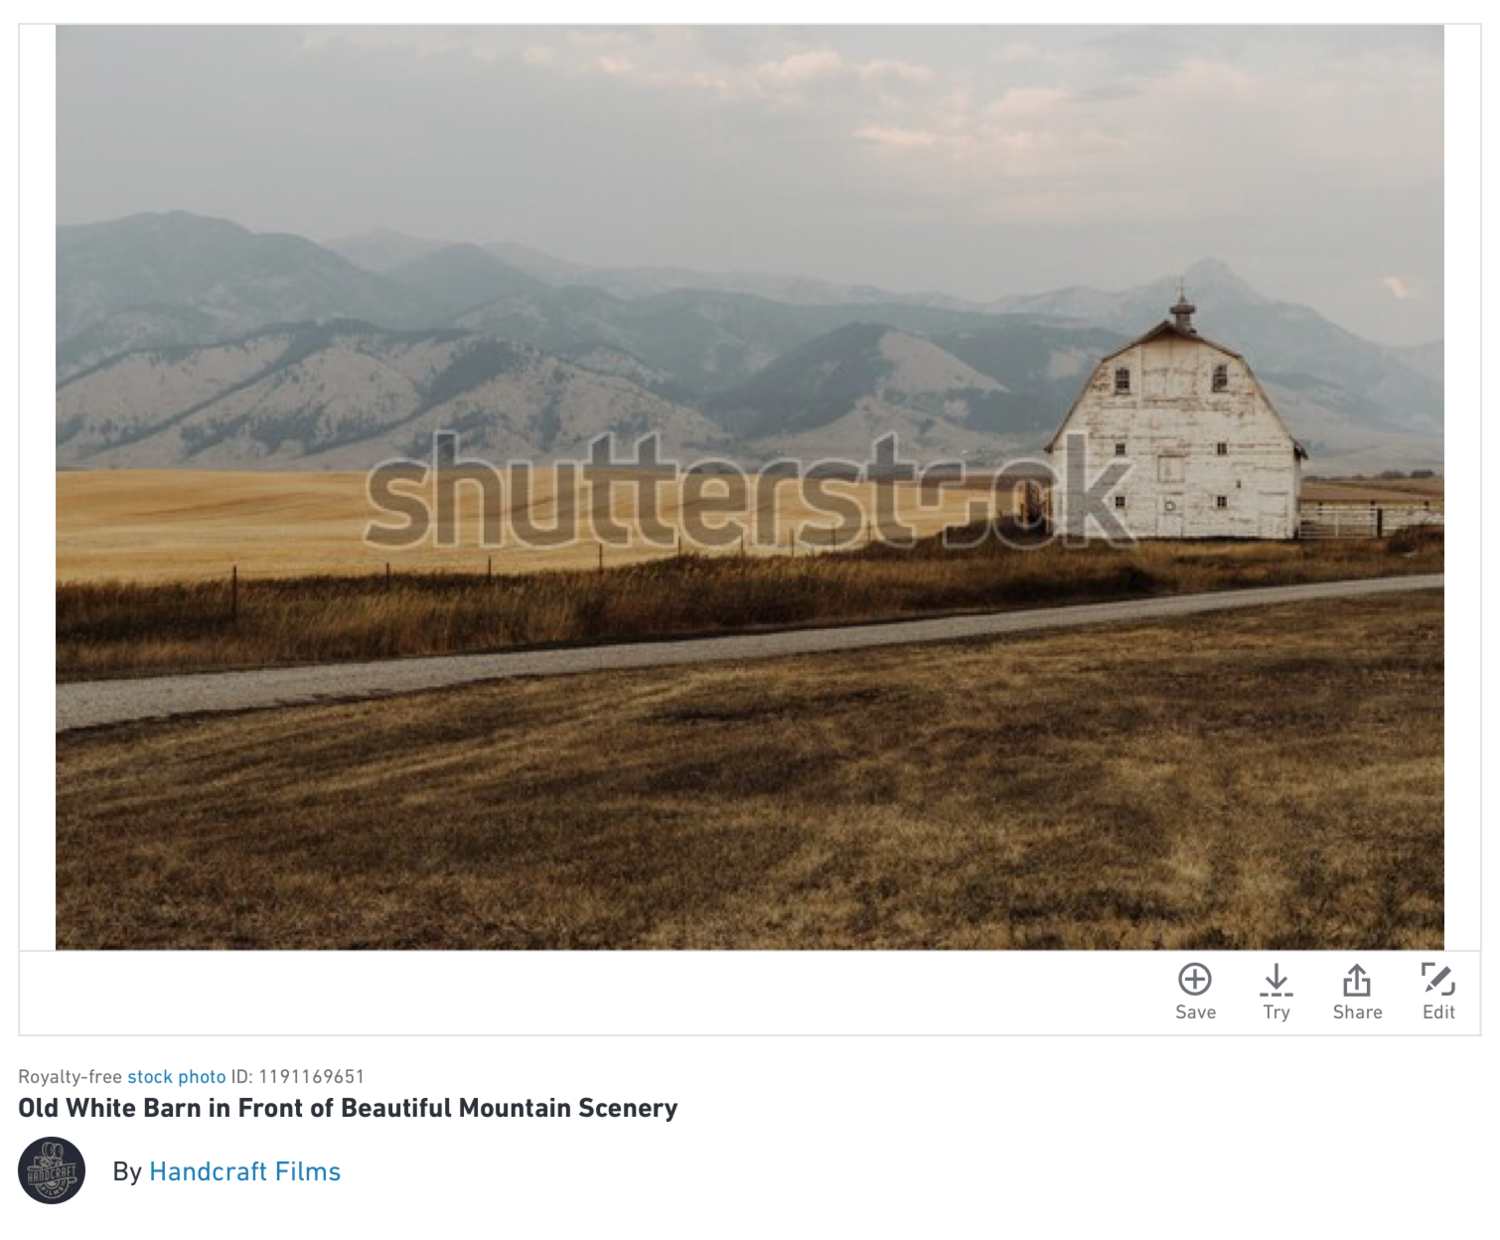 Top Seller for June on Shutterstock